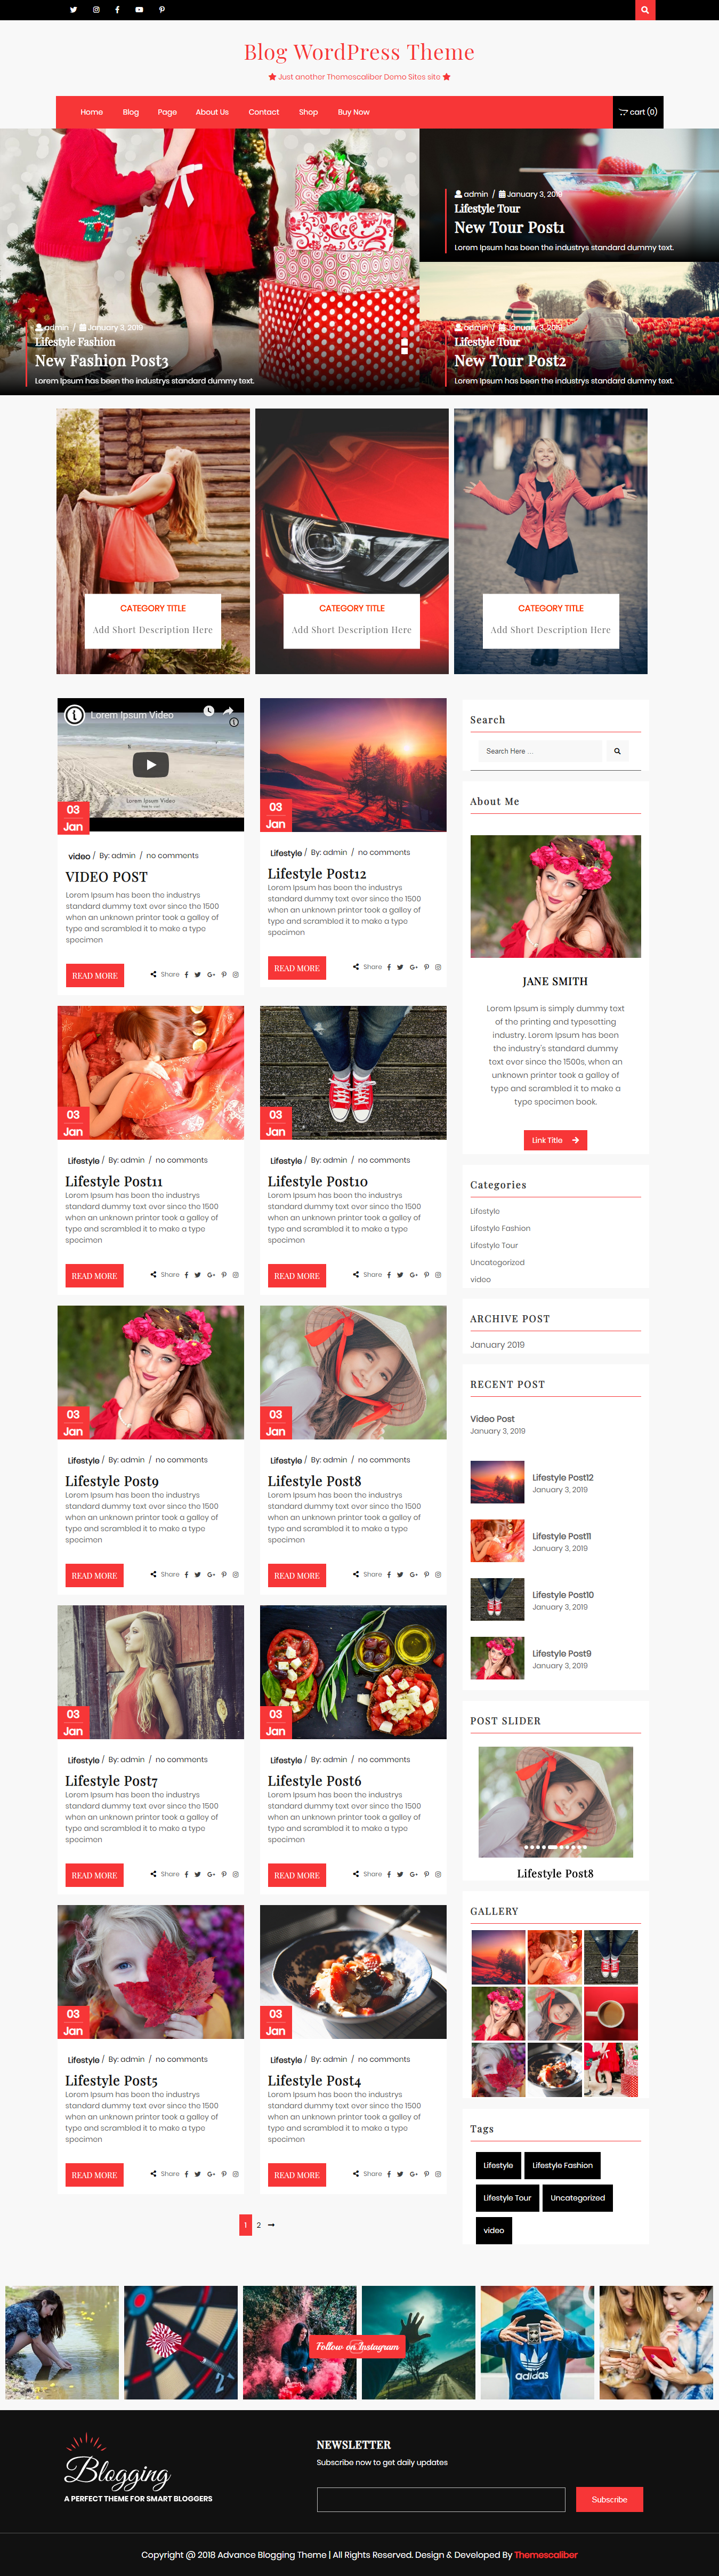 Advance Blogging - Best Free Lifestyle WordPress Theme